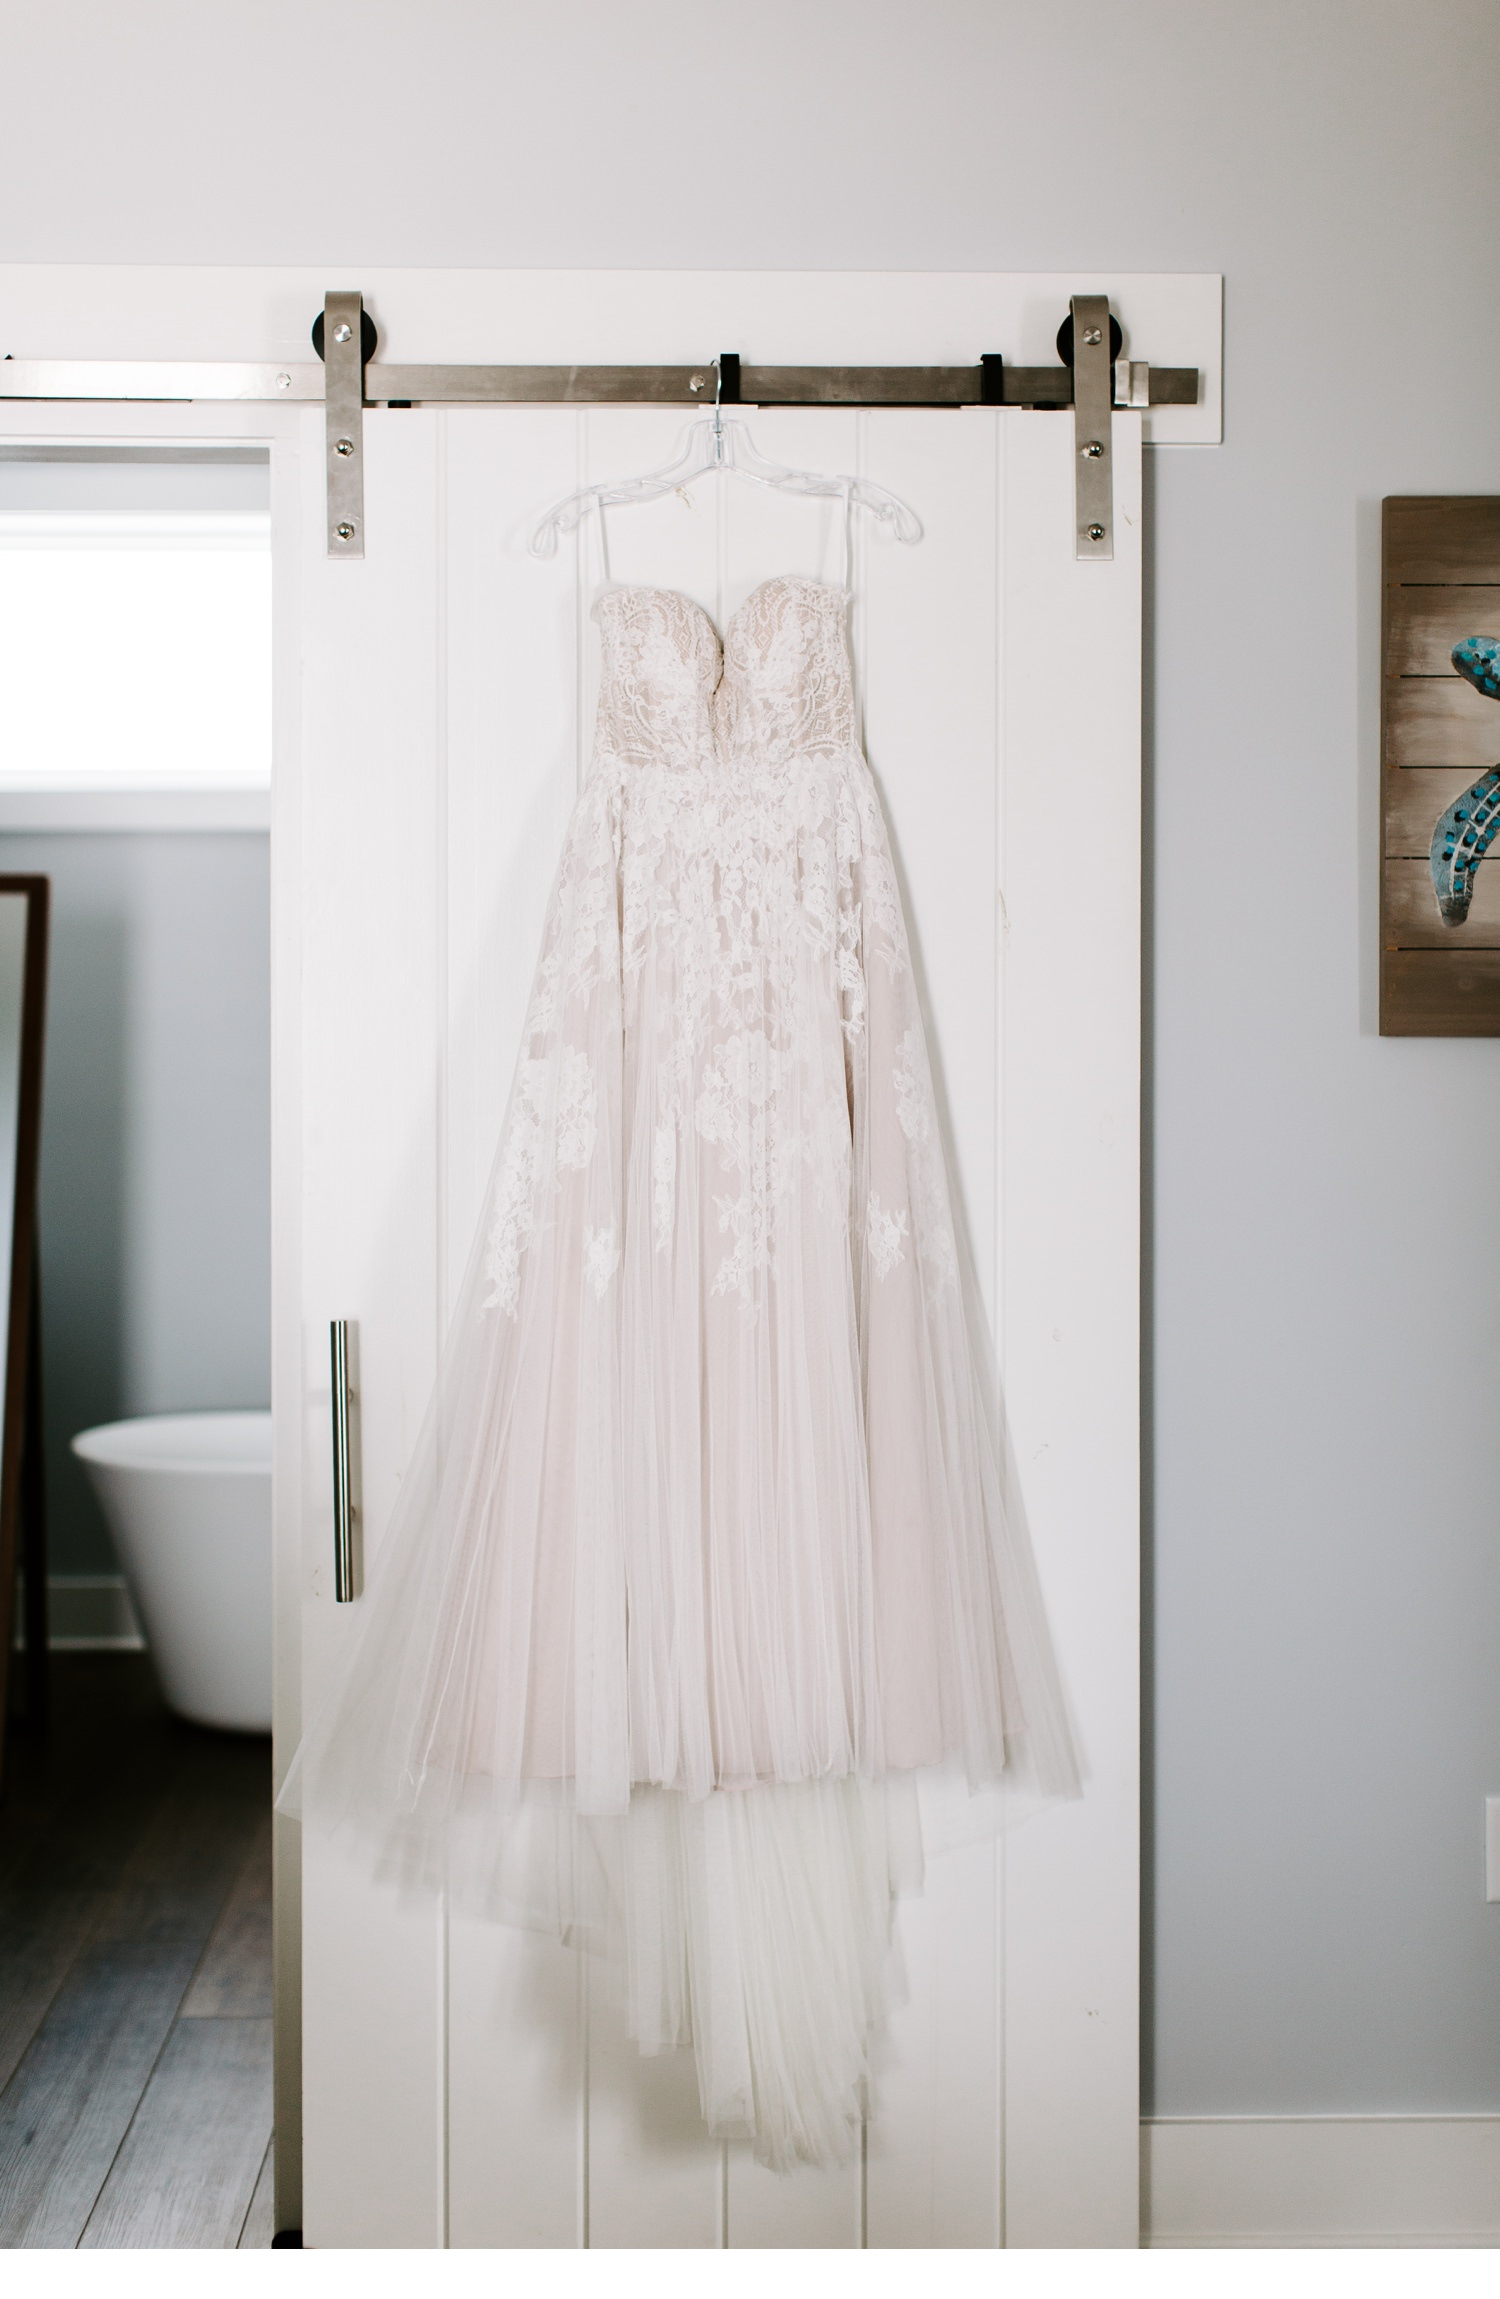 hanging wedding dress picture